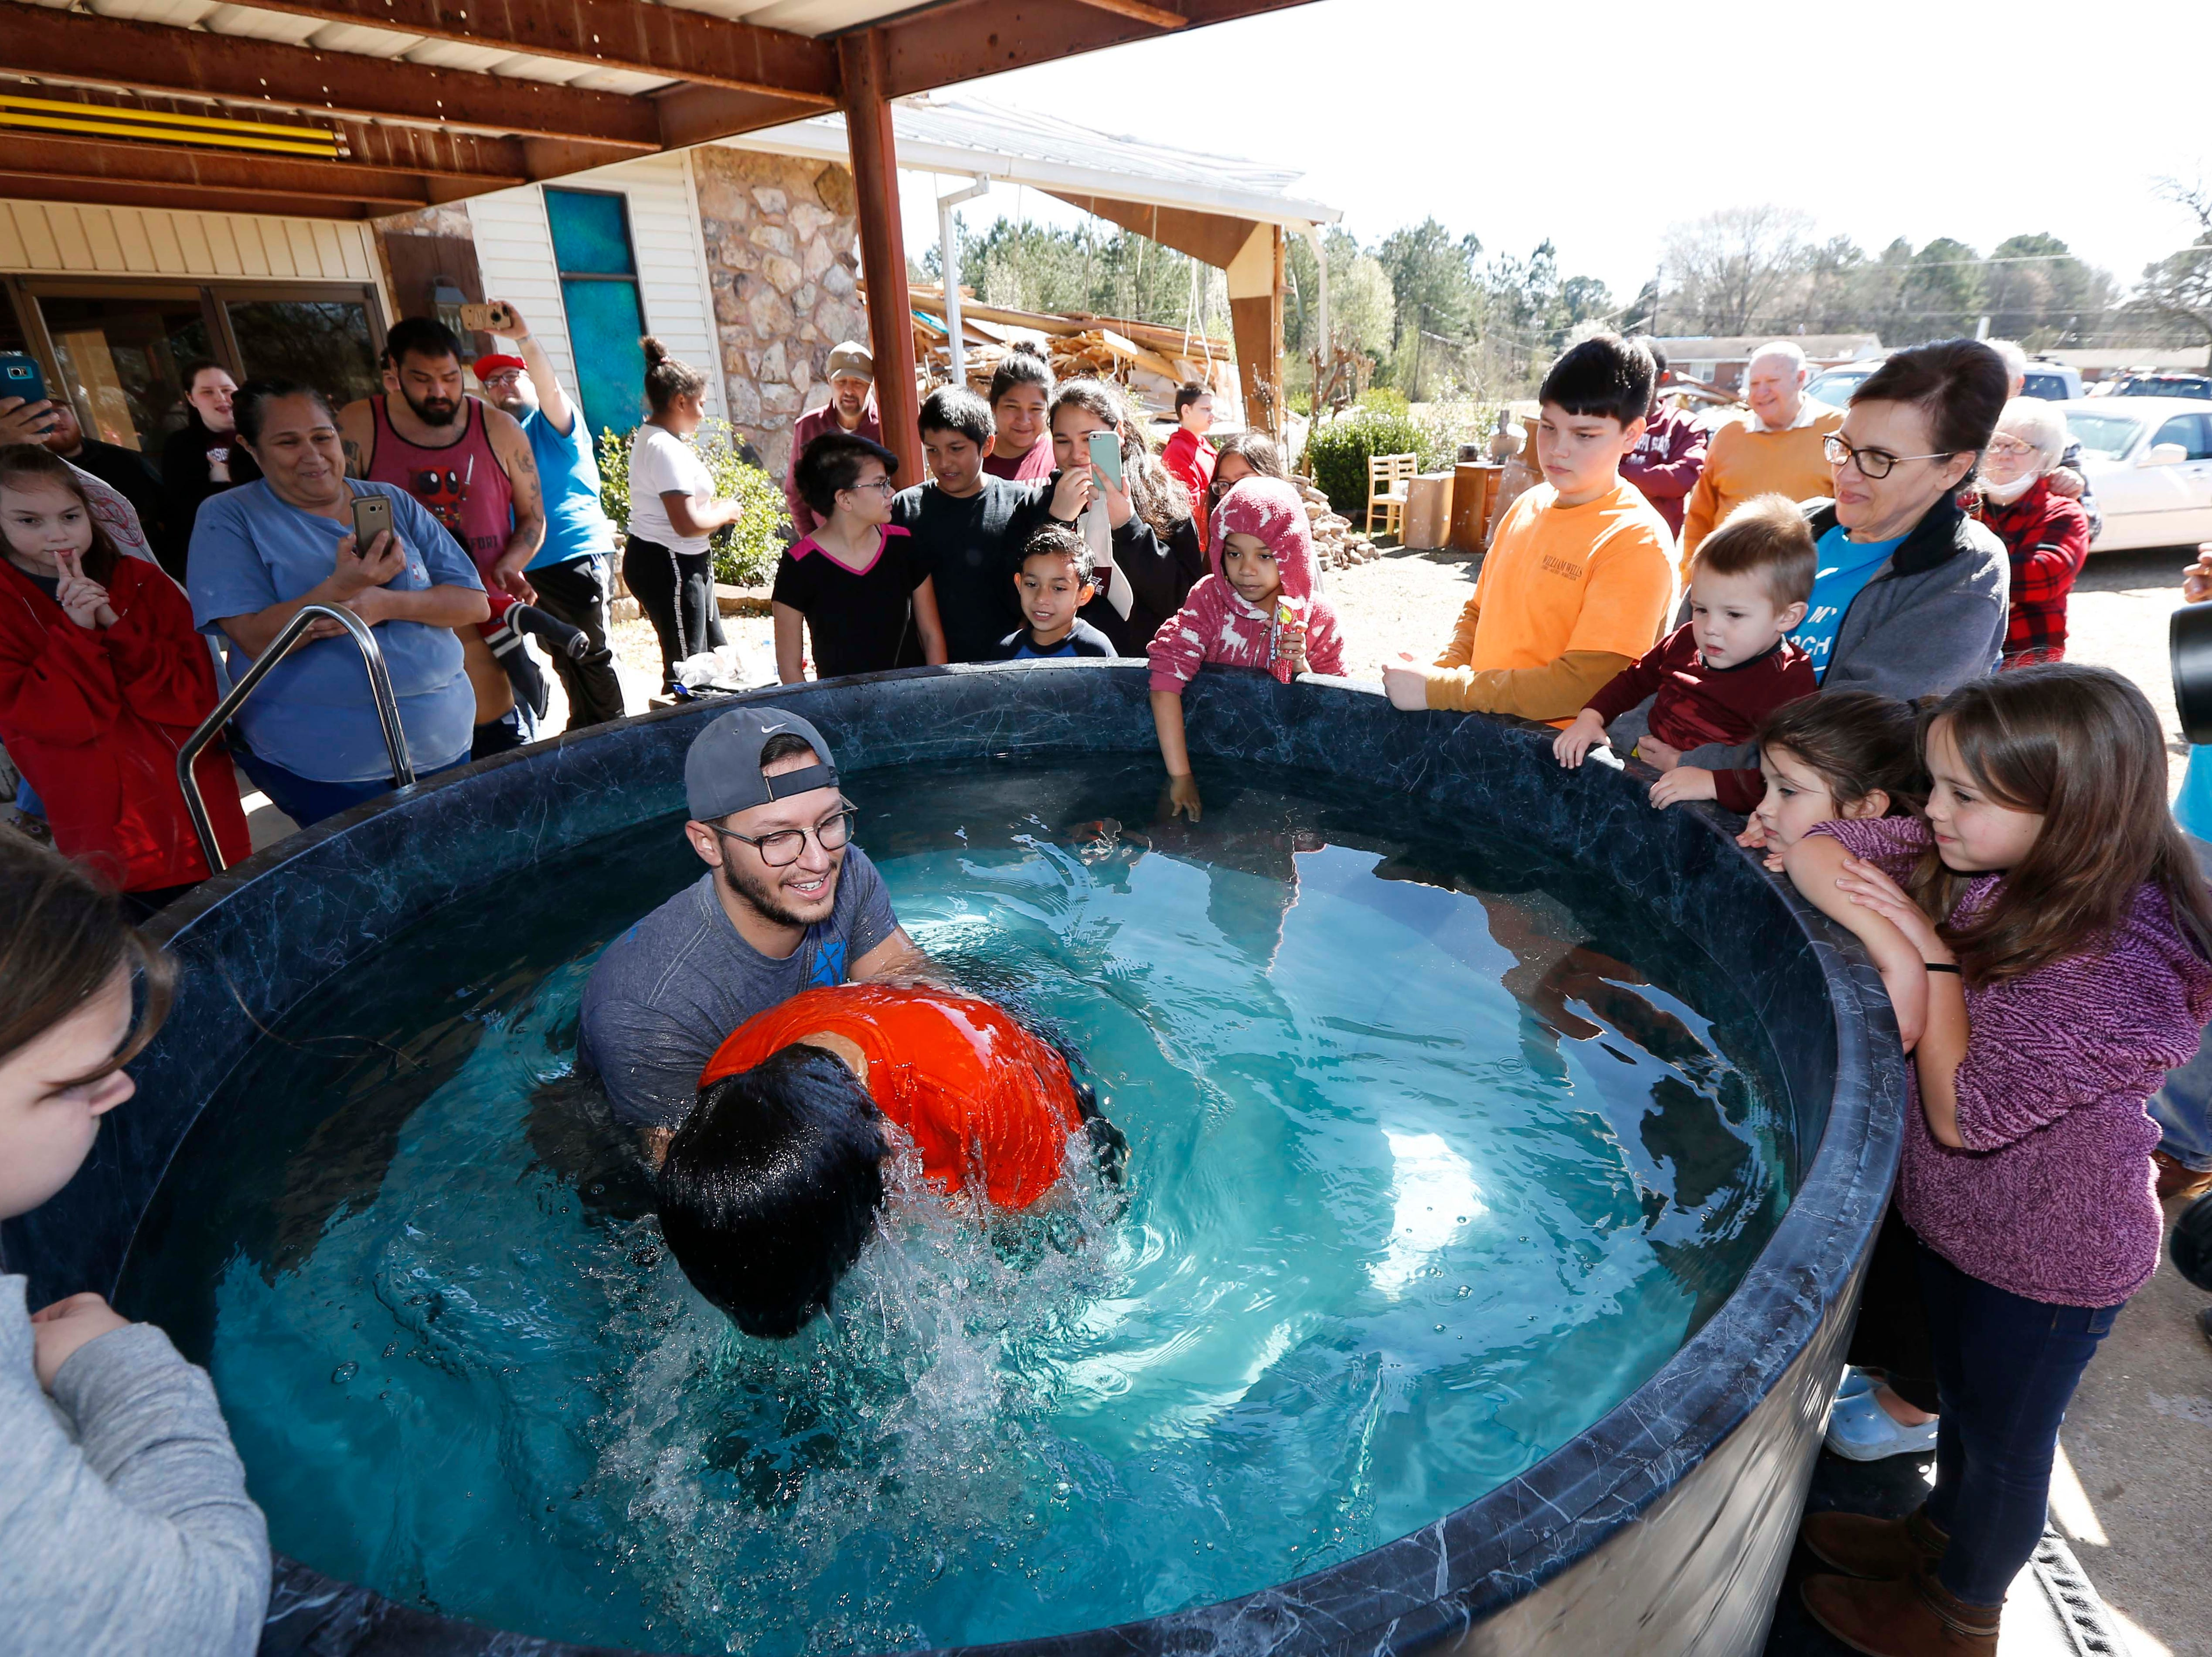 Church members watch as student pastor Craig Blaylock, left, baptizes a church member at the First Pentecostal Church in Columbus, Miss., Sunday morning, Feb. 24, 2019. The church, in the background, was destroyed by a tornado Saturday afternoon, but church members opted to go ahead with the baptisms as planned. (AP Photo/Rogelio V. Solis)